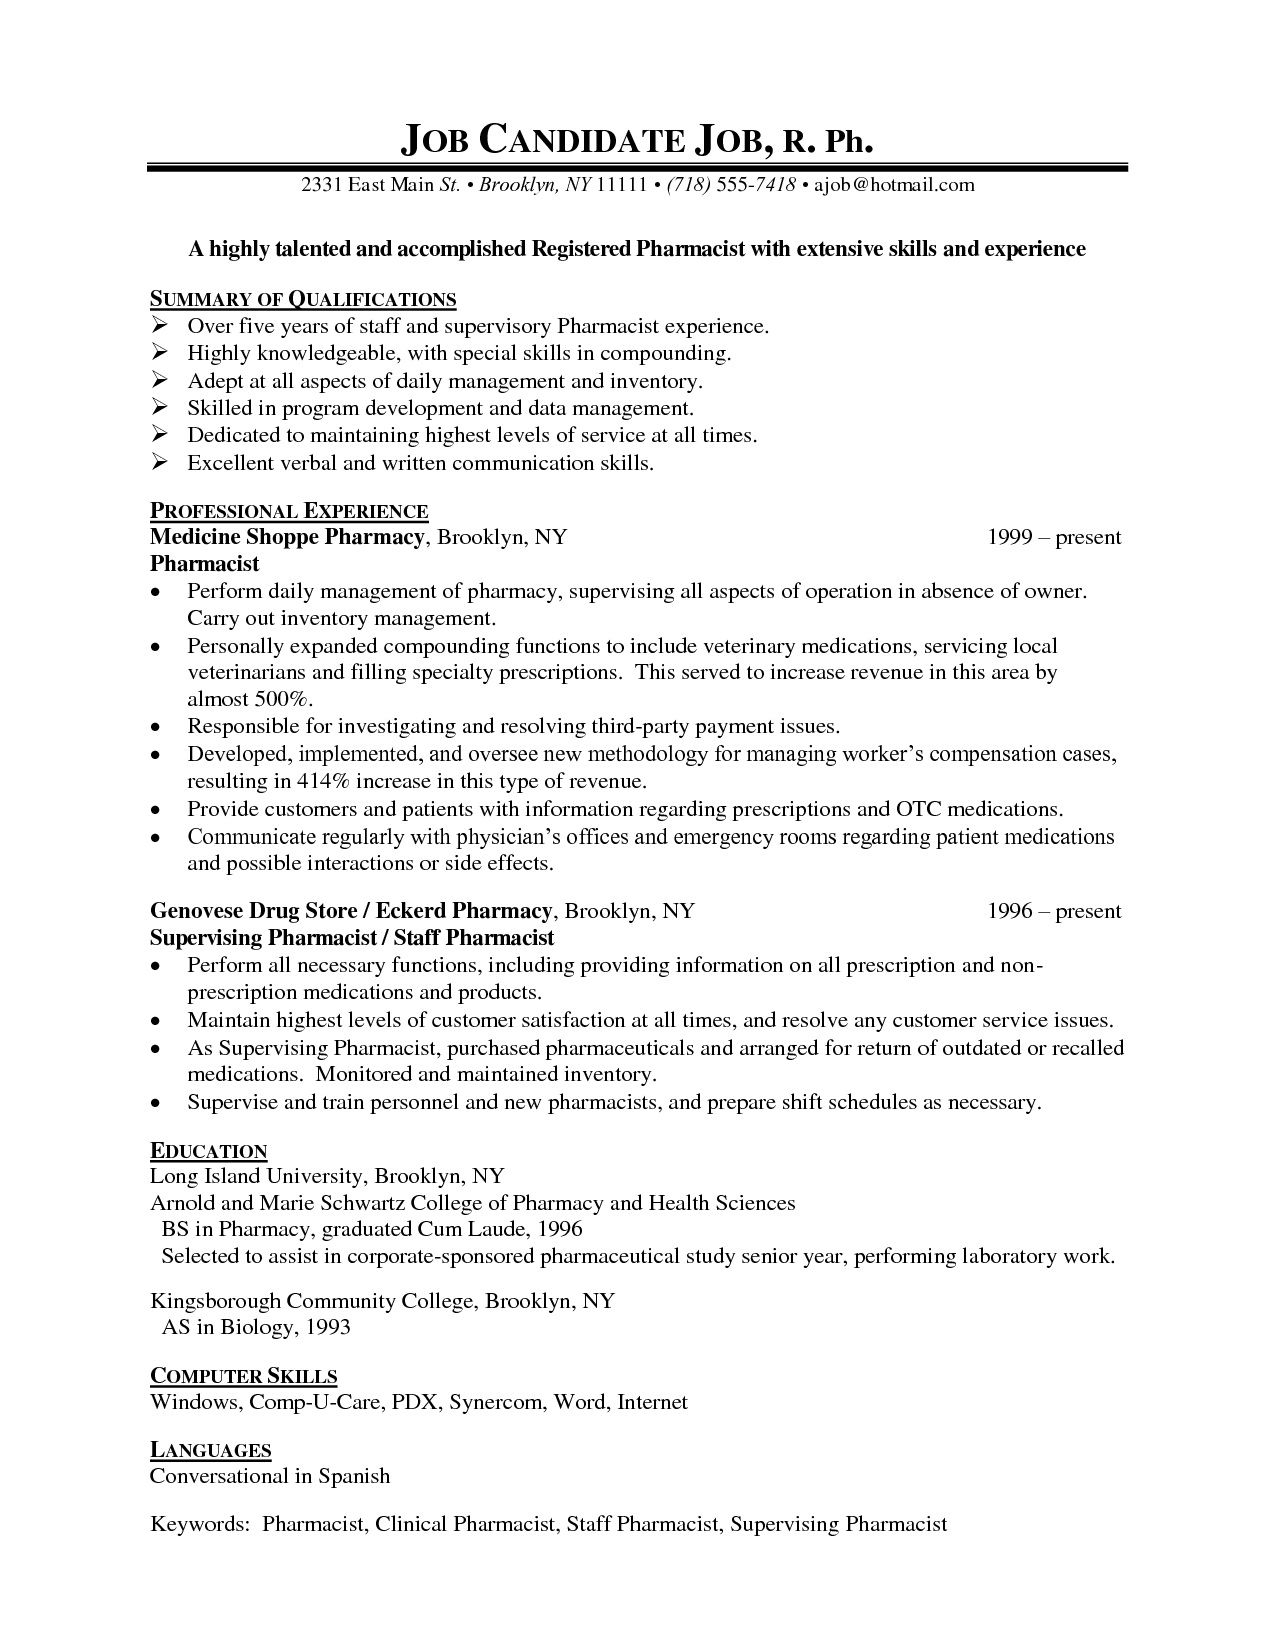 pharmacist resume examples we provide as reference to make correct and good quality resume - Resume For Pharmacy Technician